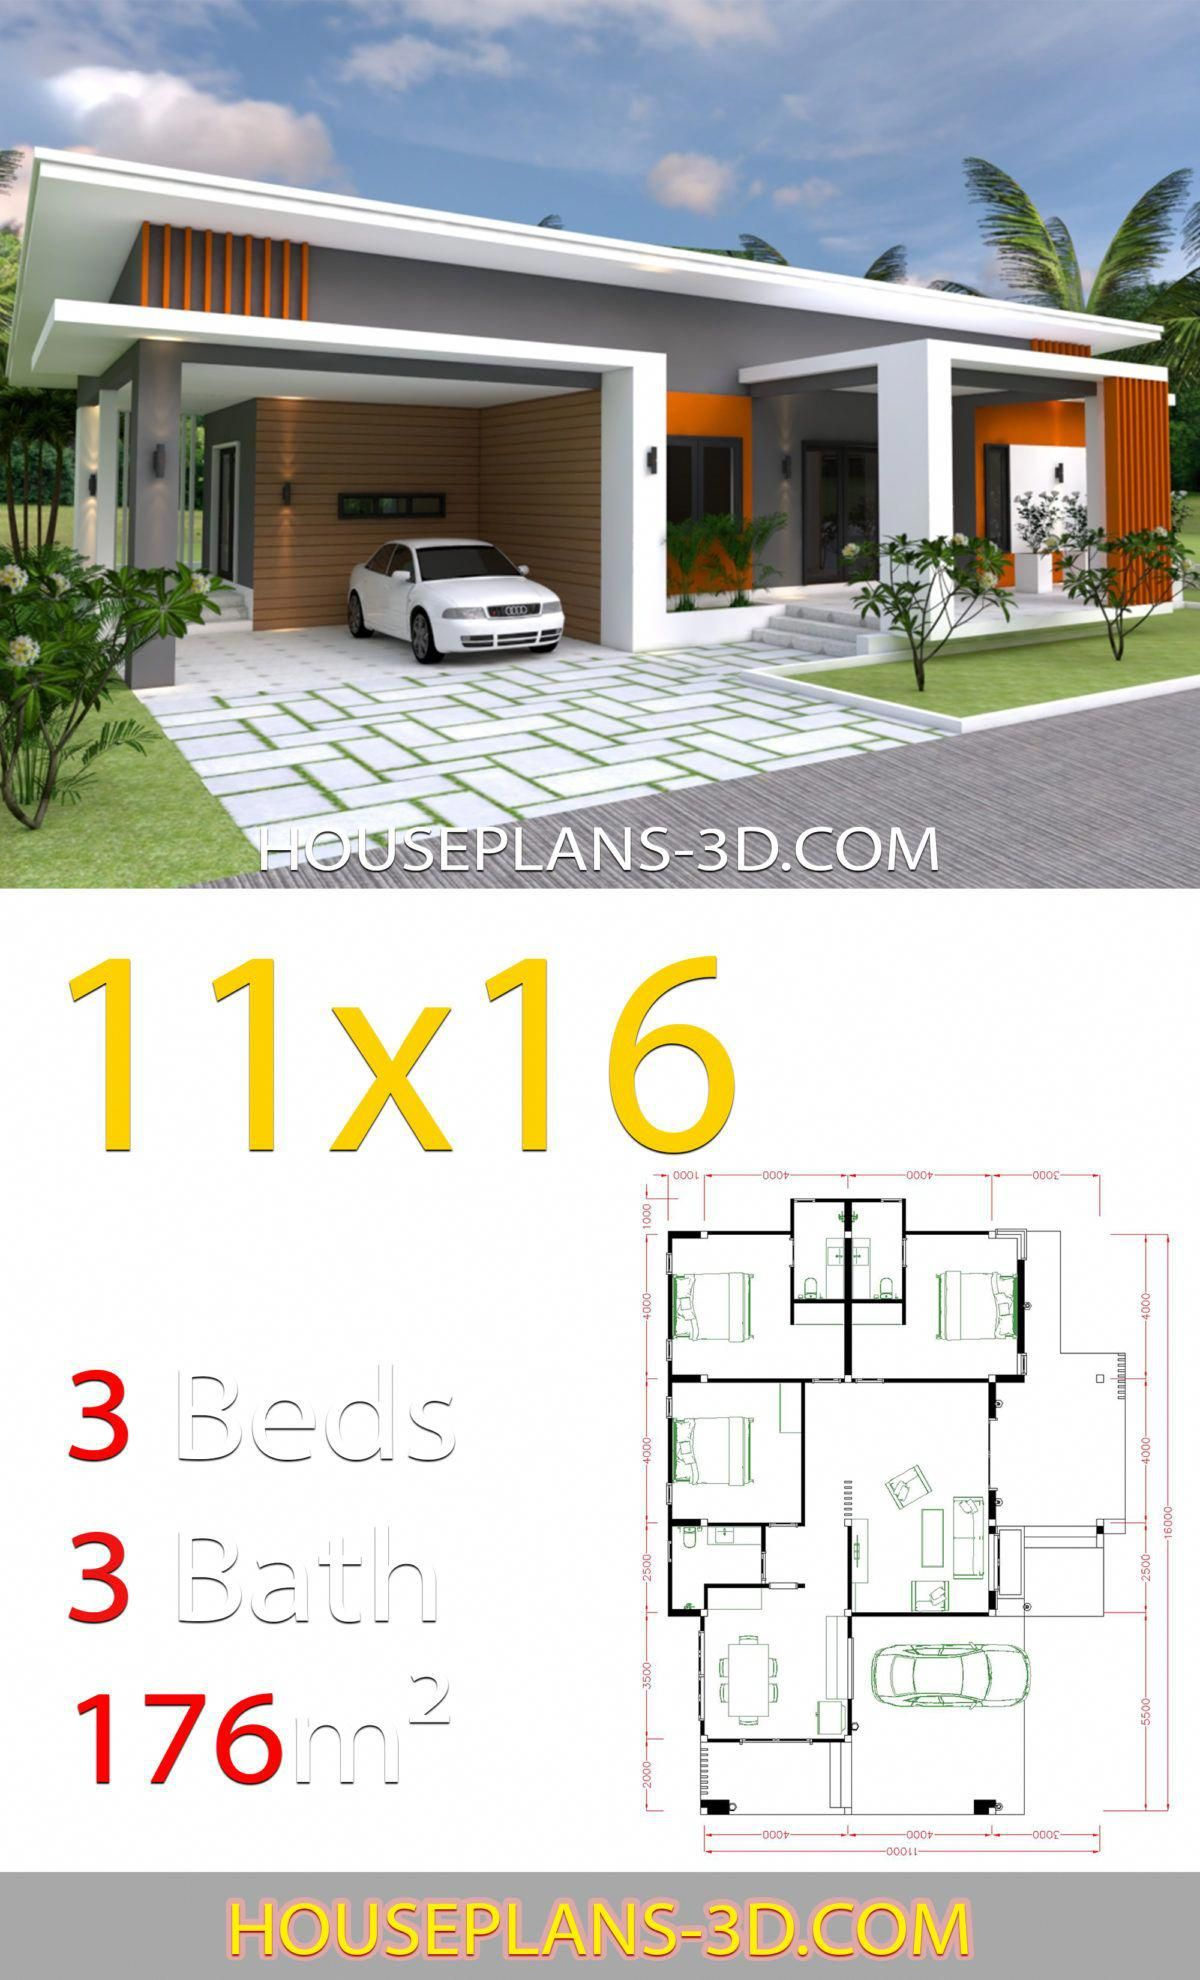 Wonderful 1 Buy Home Accents Modernhomedesigns Diy House Plans House Plans Affordable House Plans